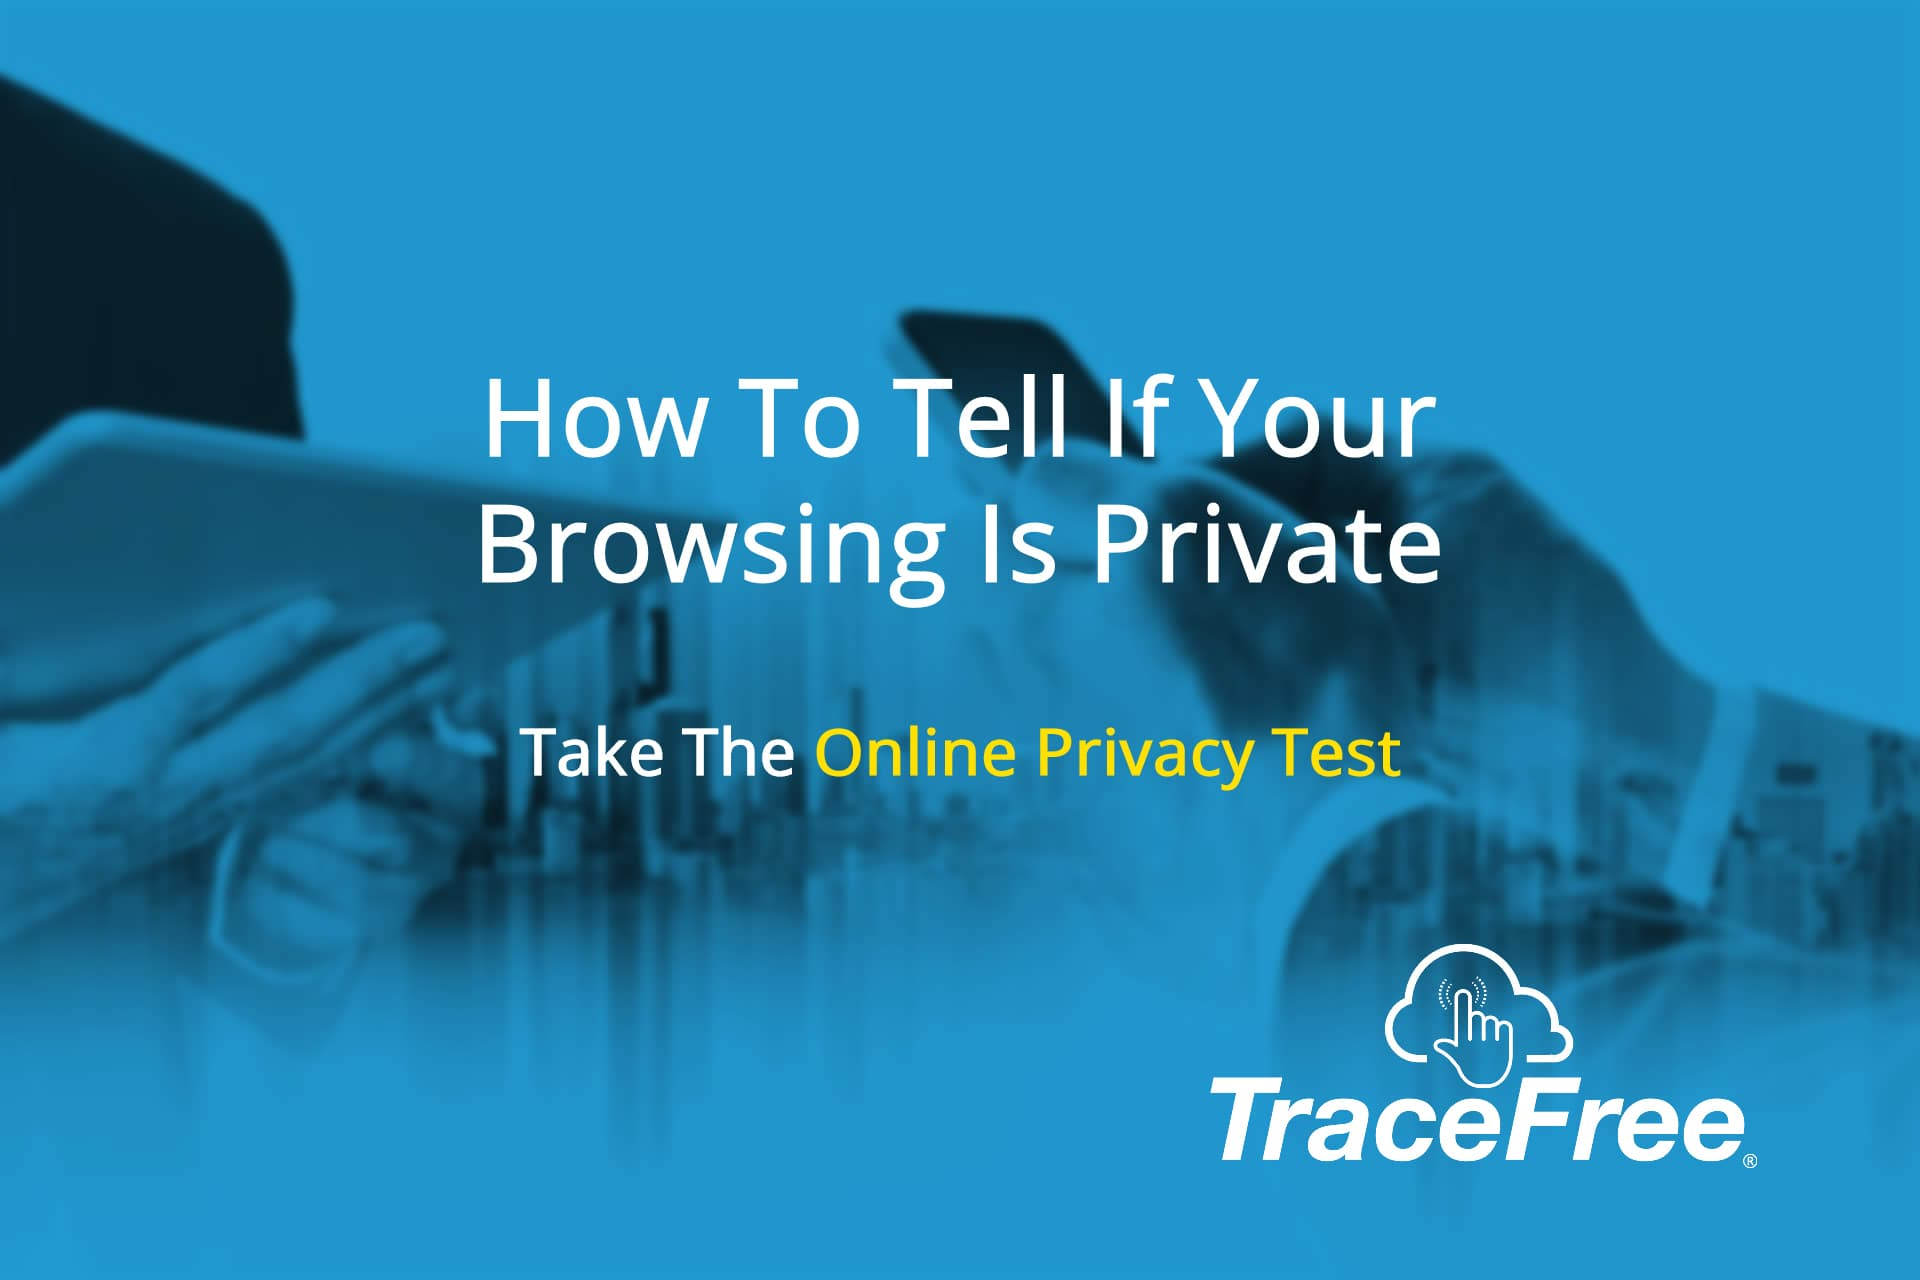 How To Tell If Your Browsing Is Private